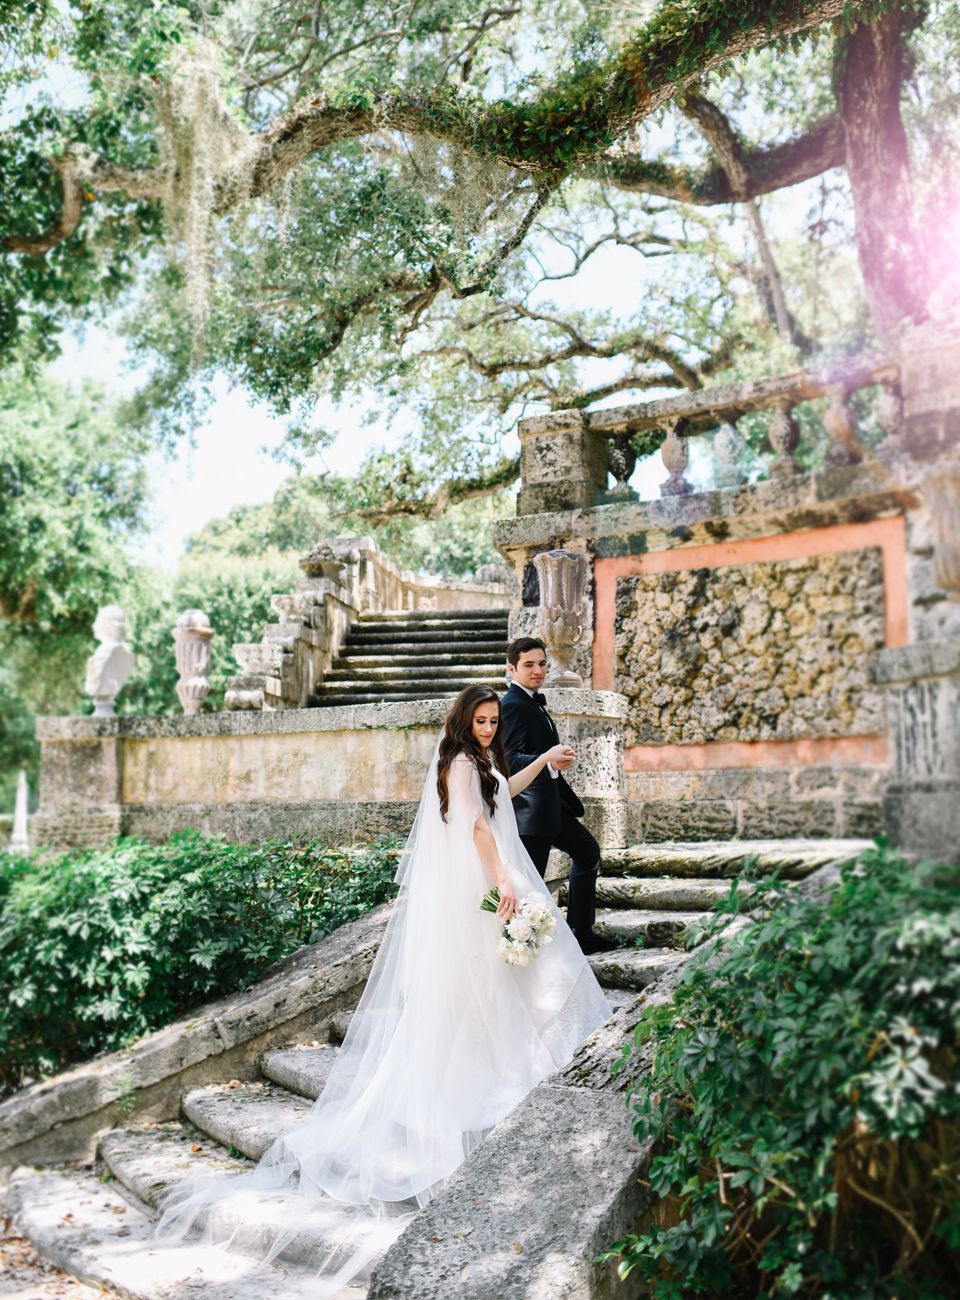 Miami Wedding Photographer Vizcaya Museum In Is A Super Por Engagement Session Location For Many Years Now